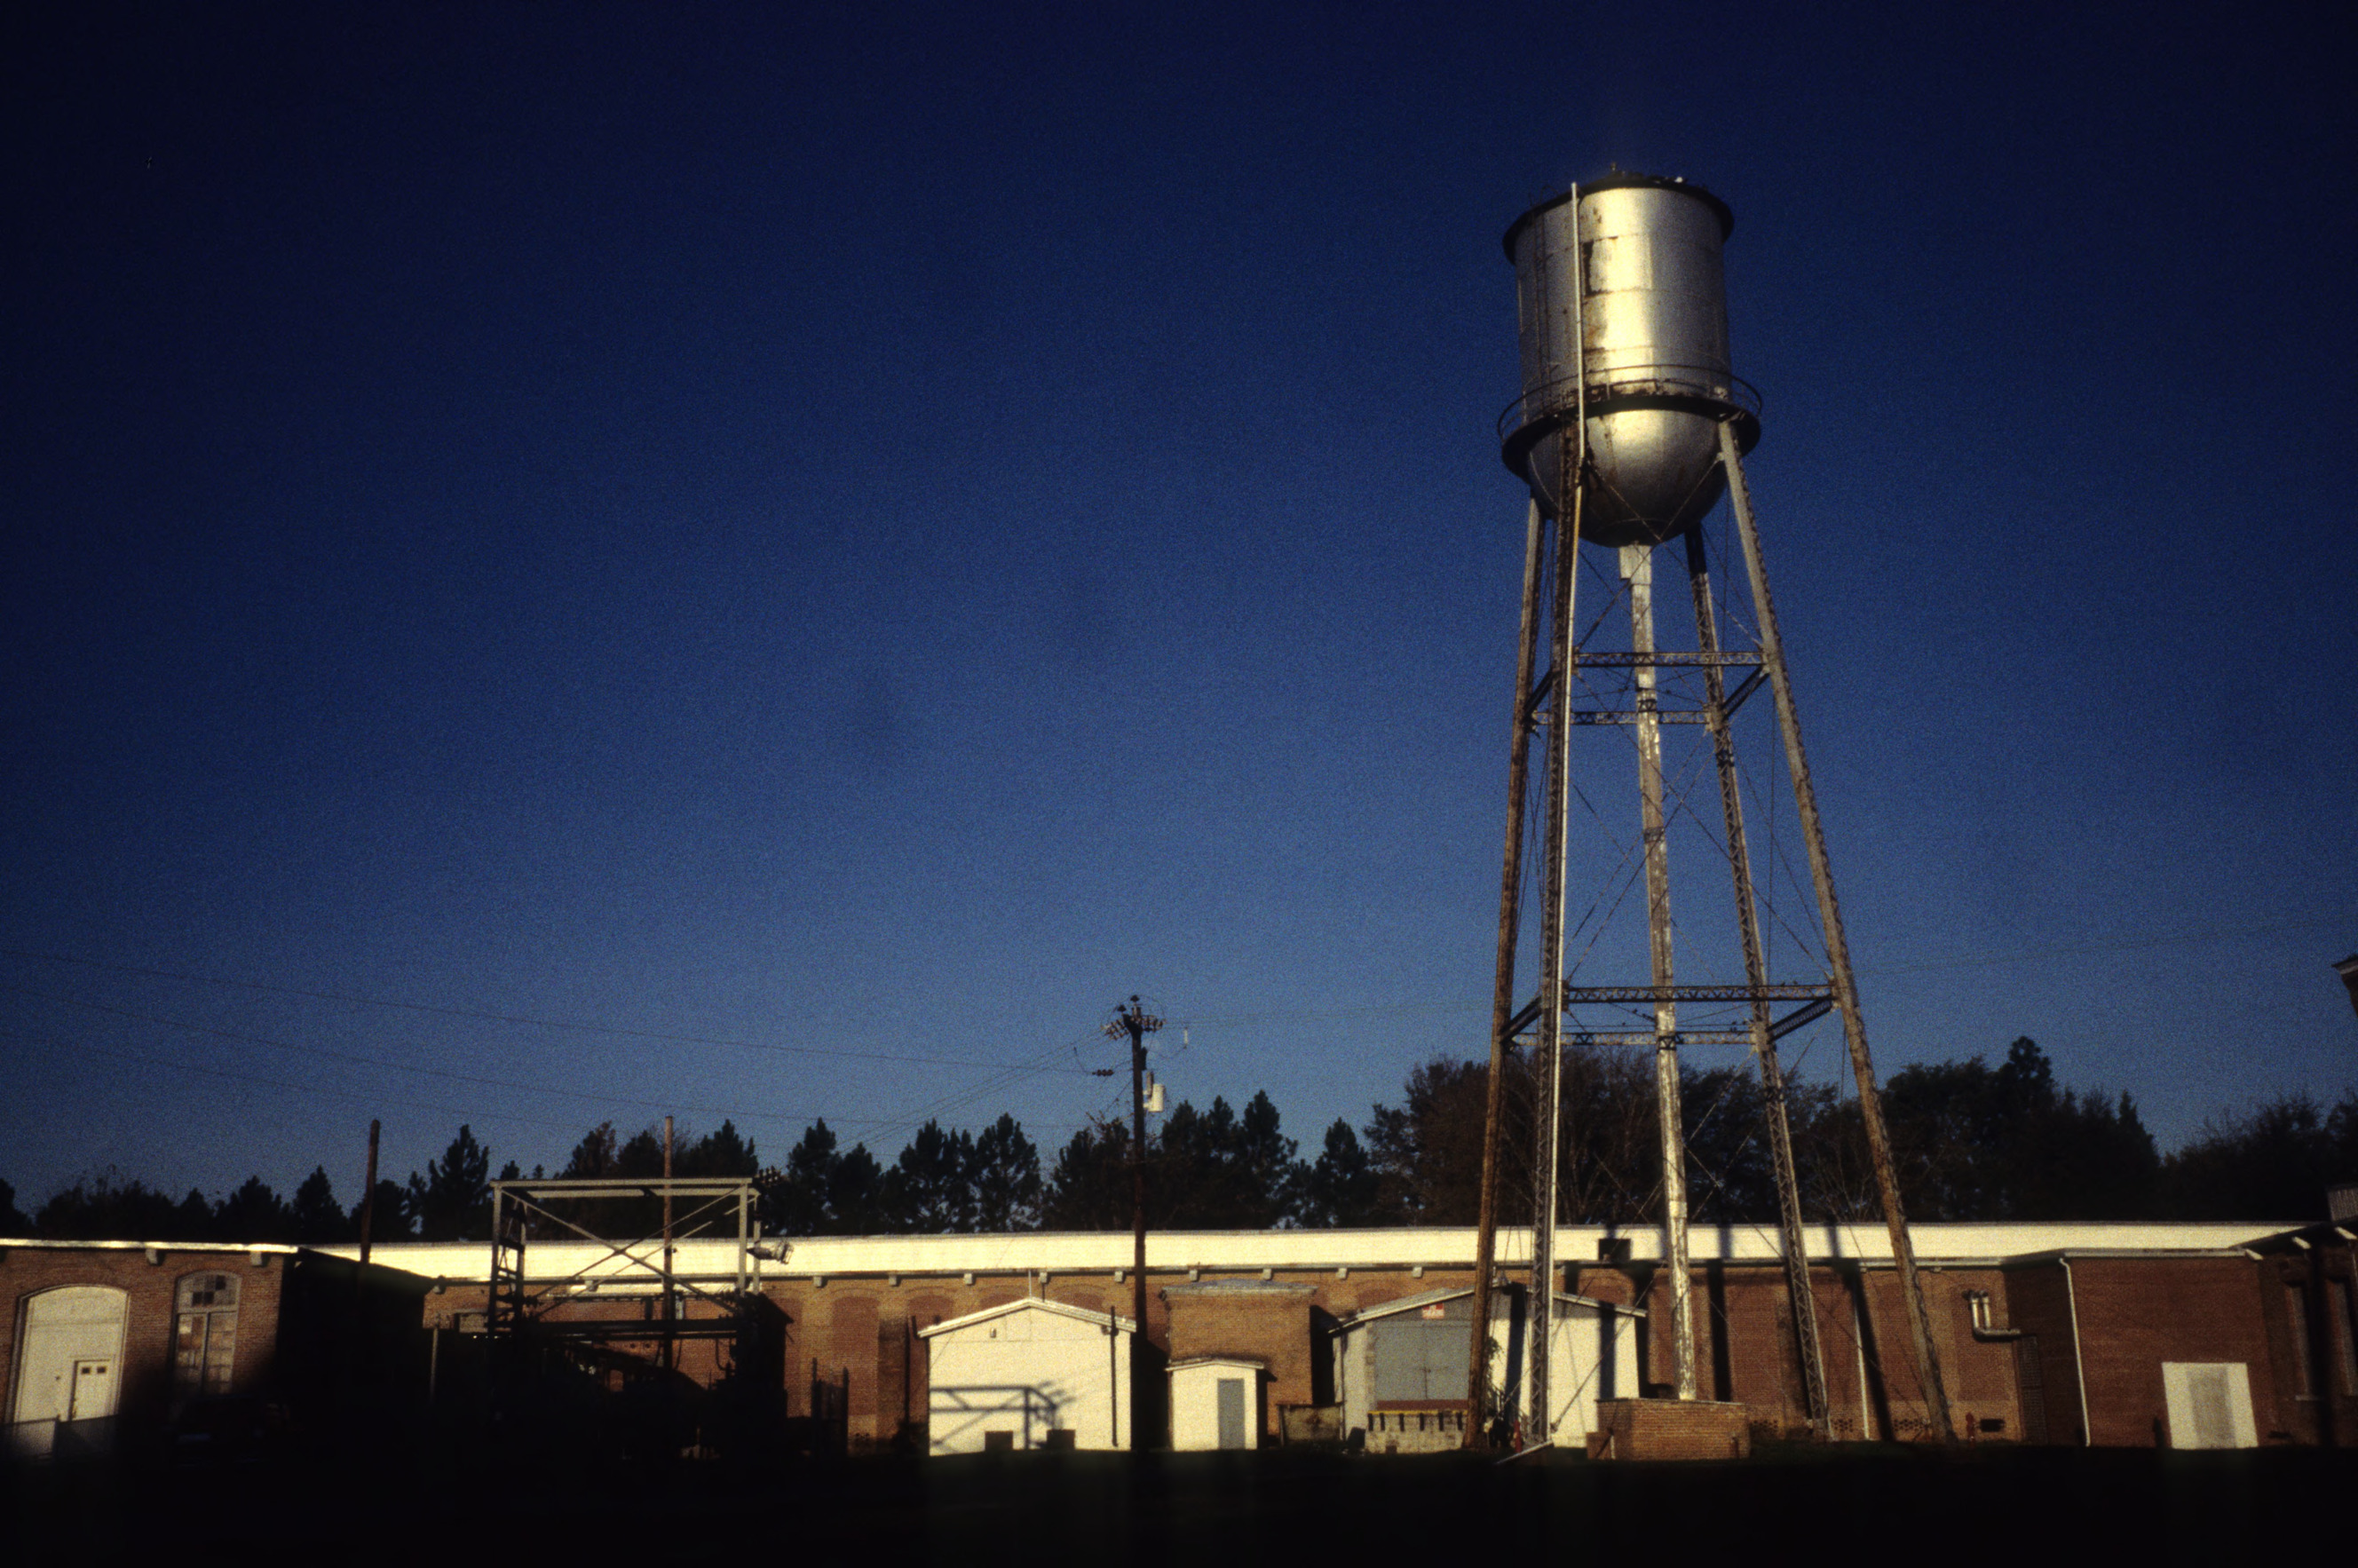 View with water tower, Edenton Cotton Mill, Edenton, Chowan County, North Carolina